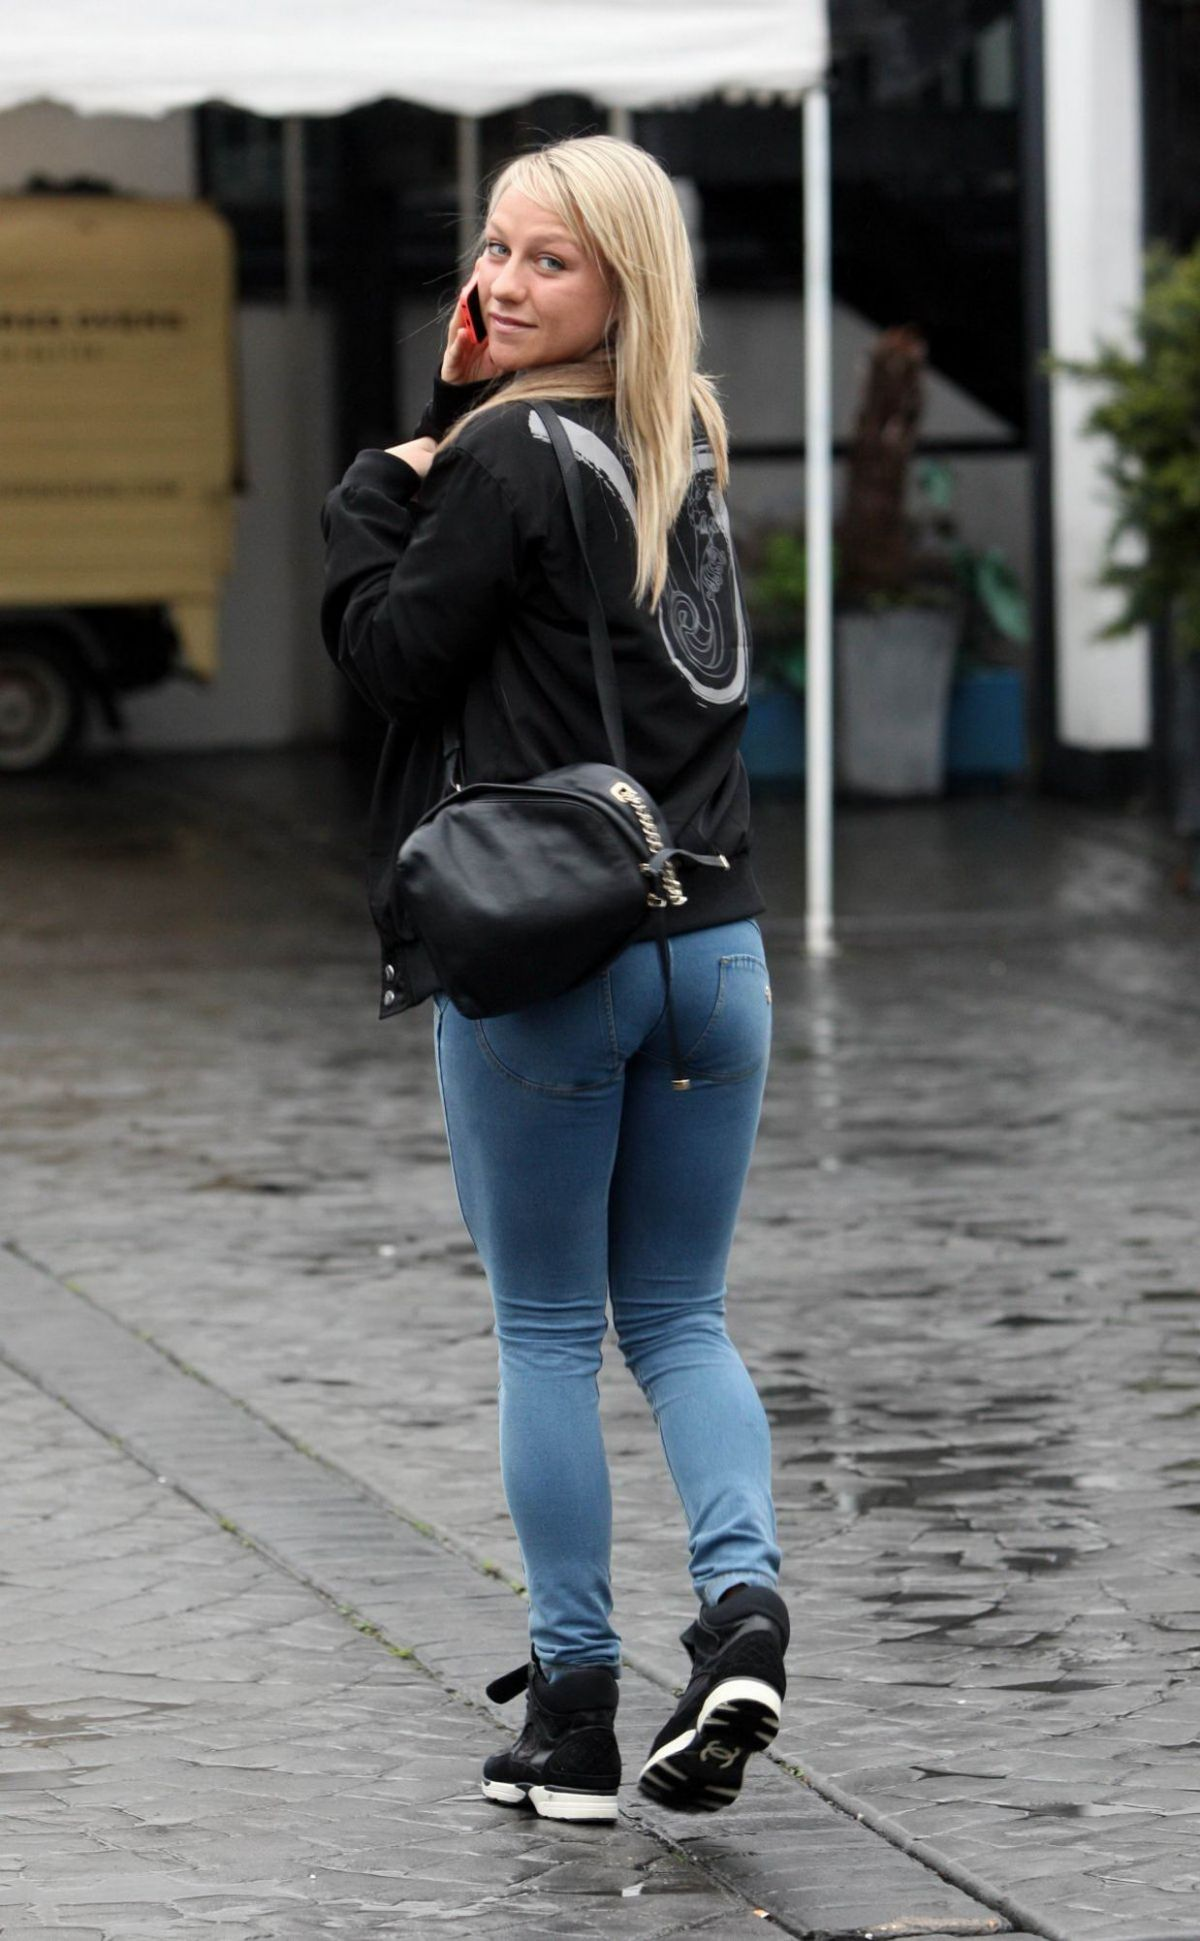 Chloe Madeley Heading To A Photoshoot In North London